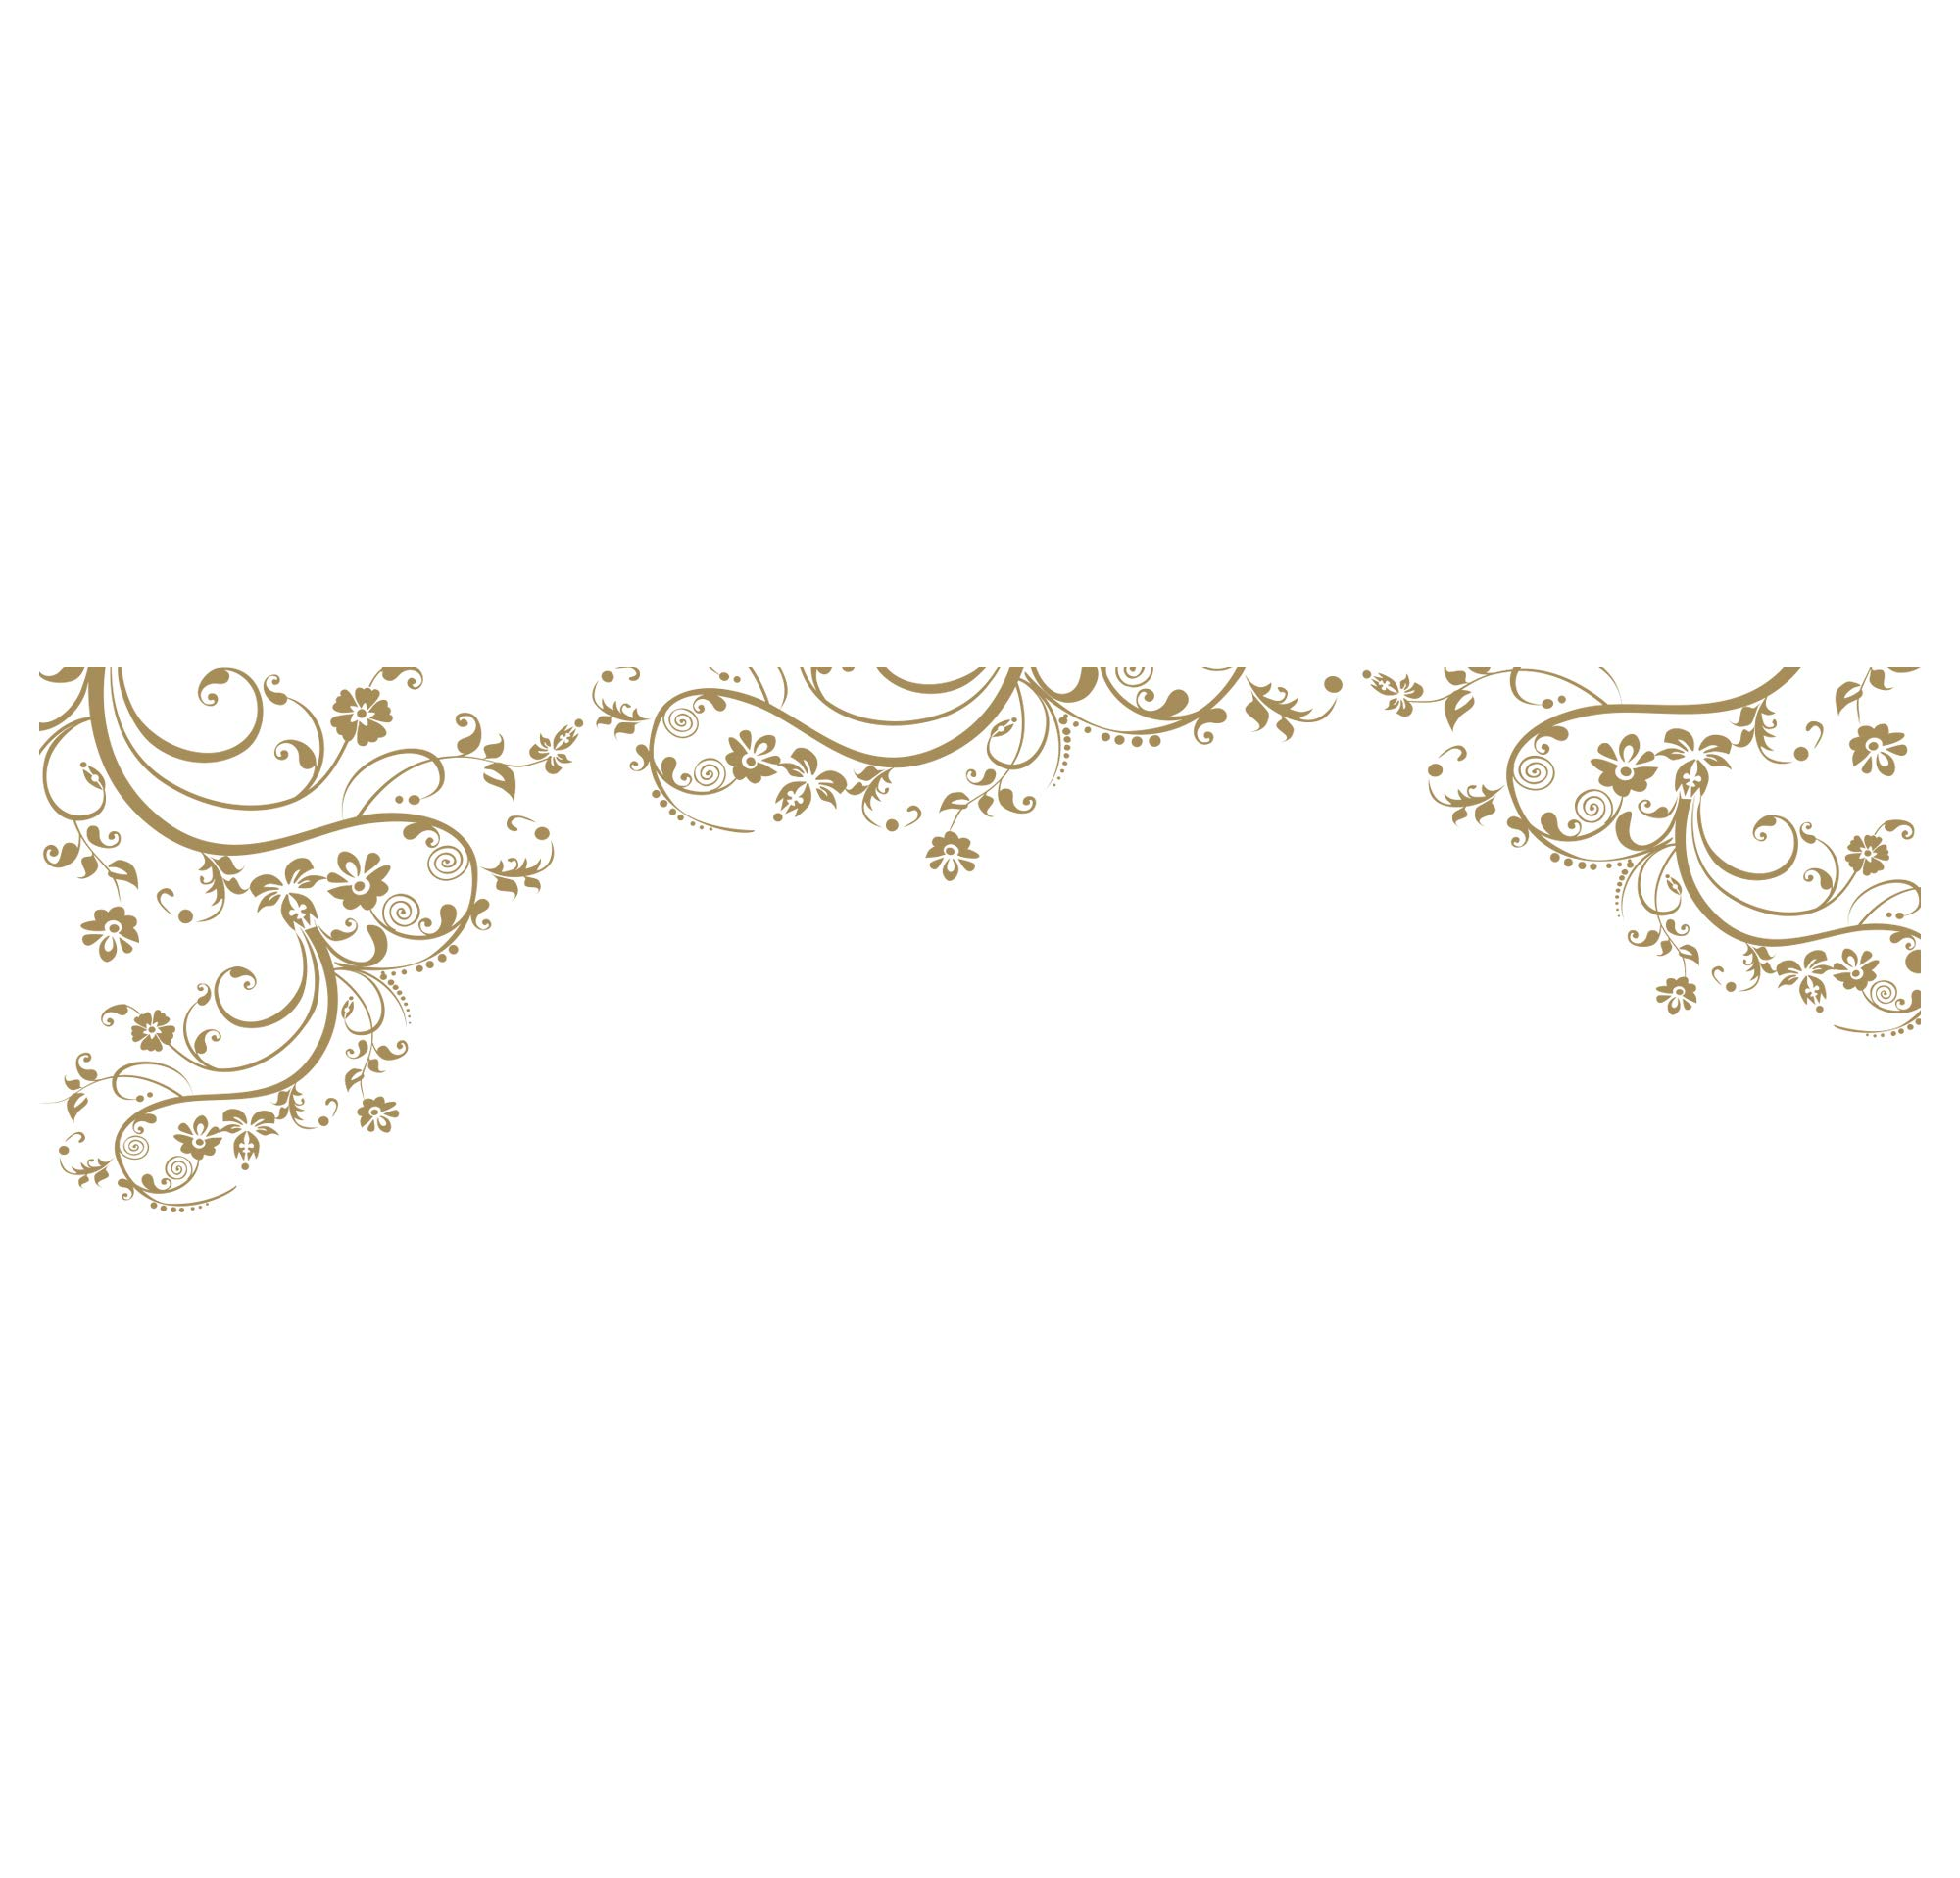 Gold Swirl Flower Floral Wall Decal Design. Edge to Edge Wall Decal. (100'' X 29'') #262A